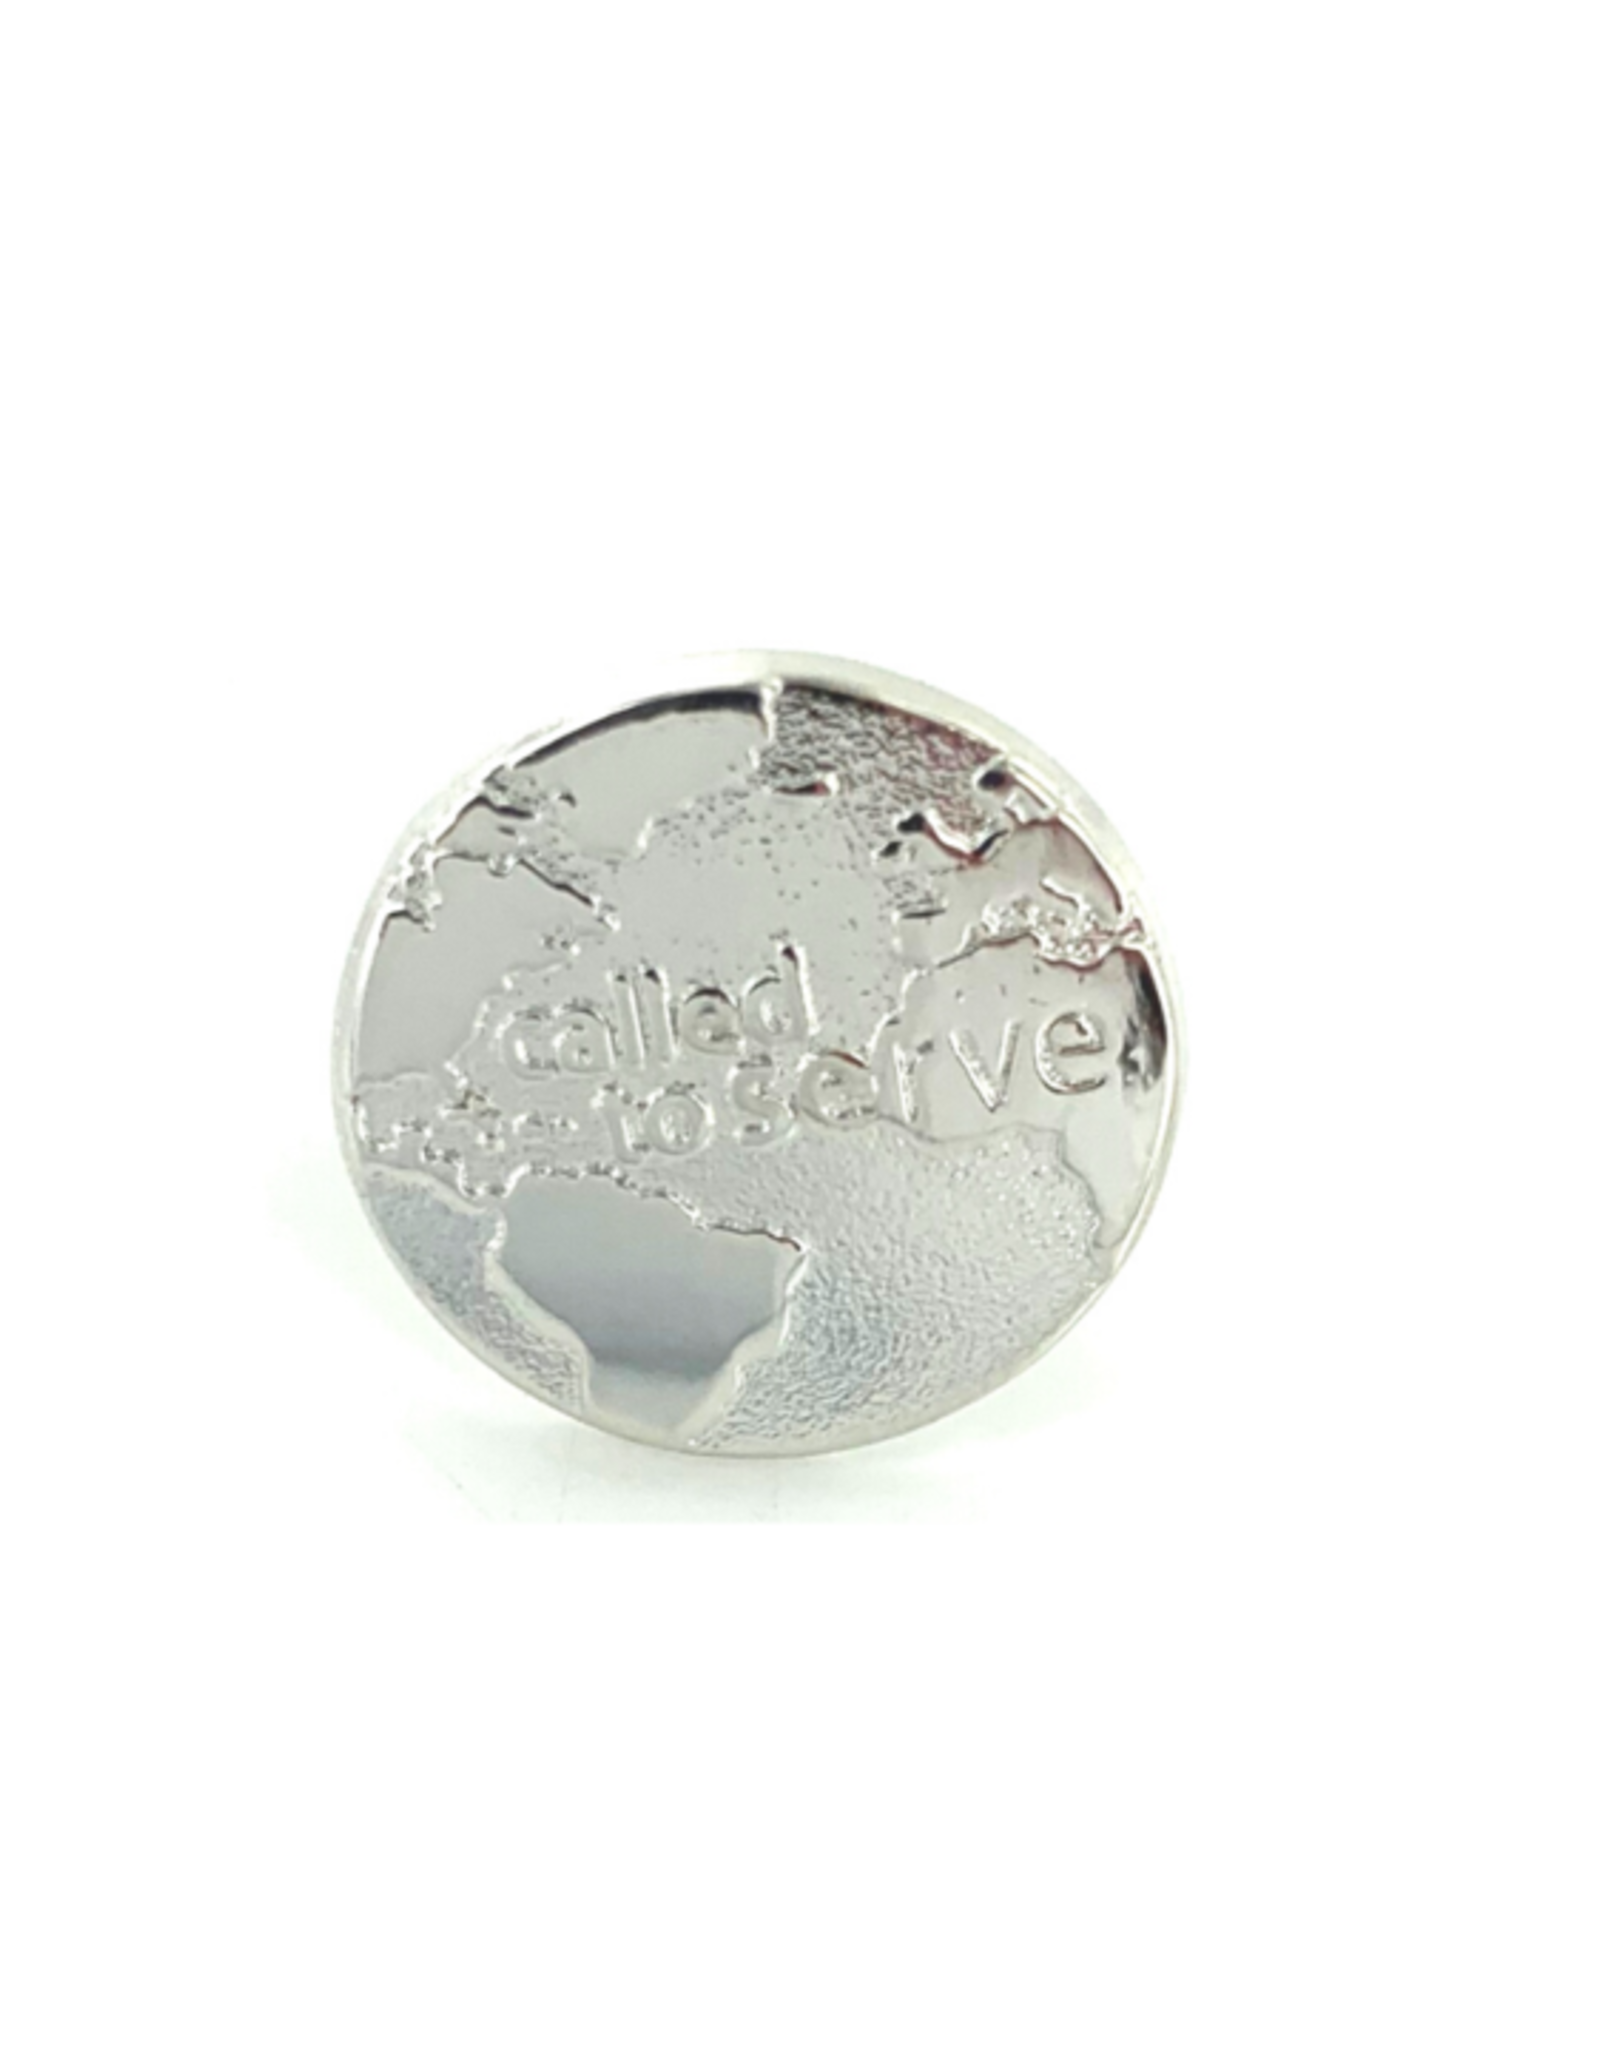 Called To Serve Tie Tack (Globe)